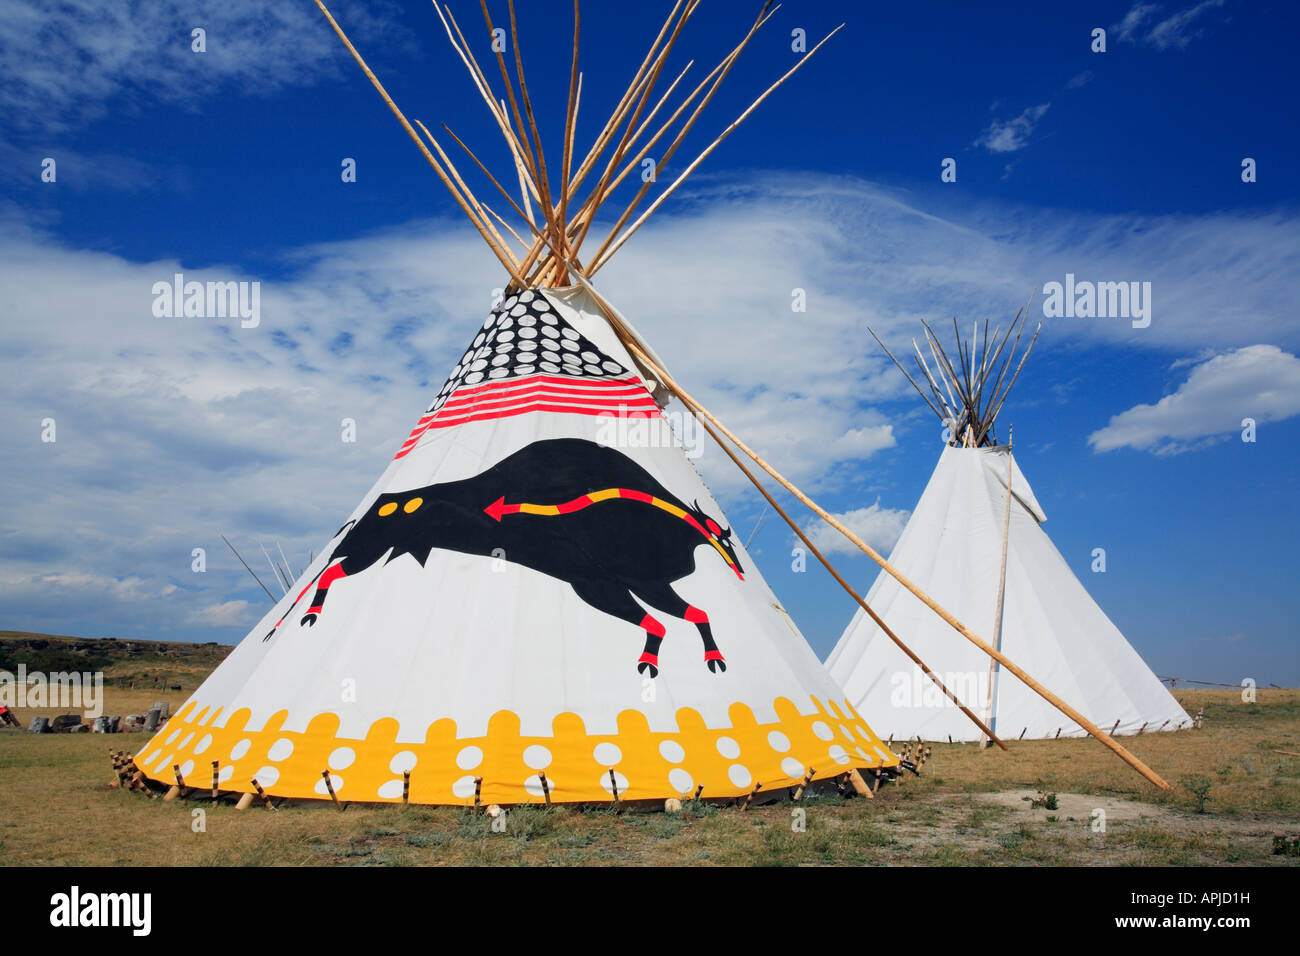 First Nations or Plains Indian traditional native tipis or teepees for lodging and housing - Stock Image